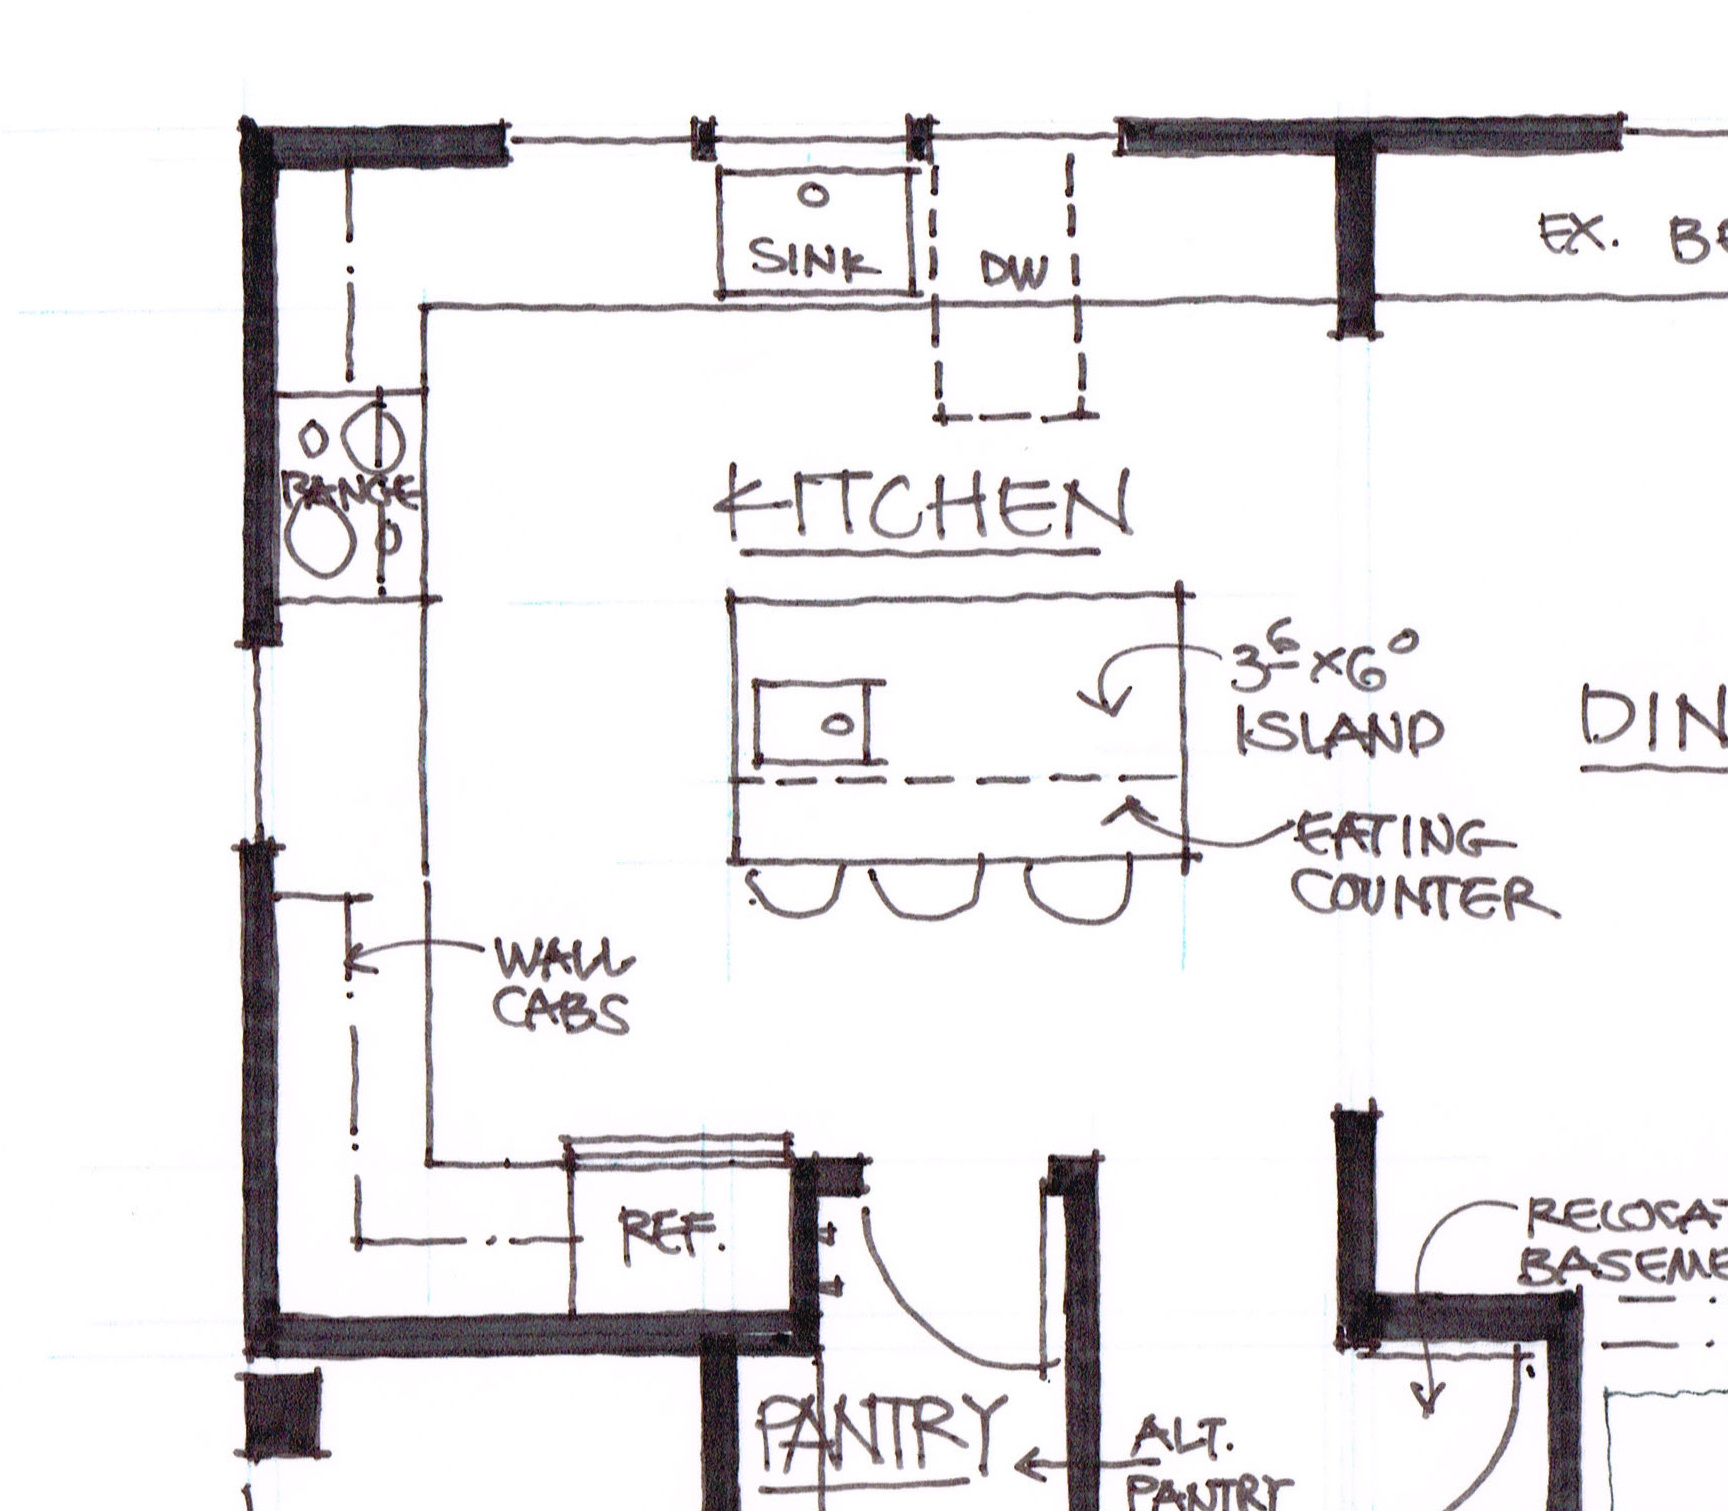 The glade a la carte kitchen let 39 s face the music - Small kitchen floor plans ...